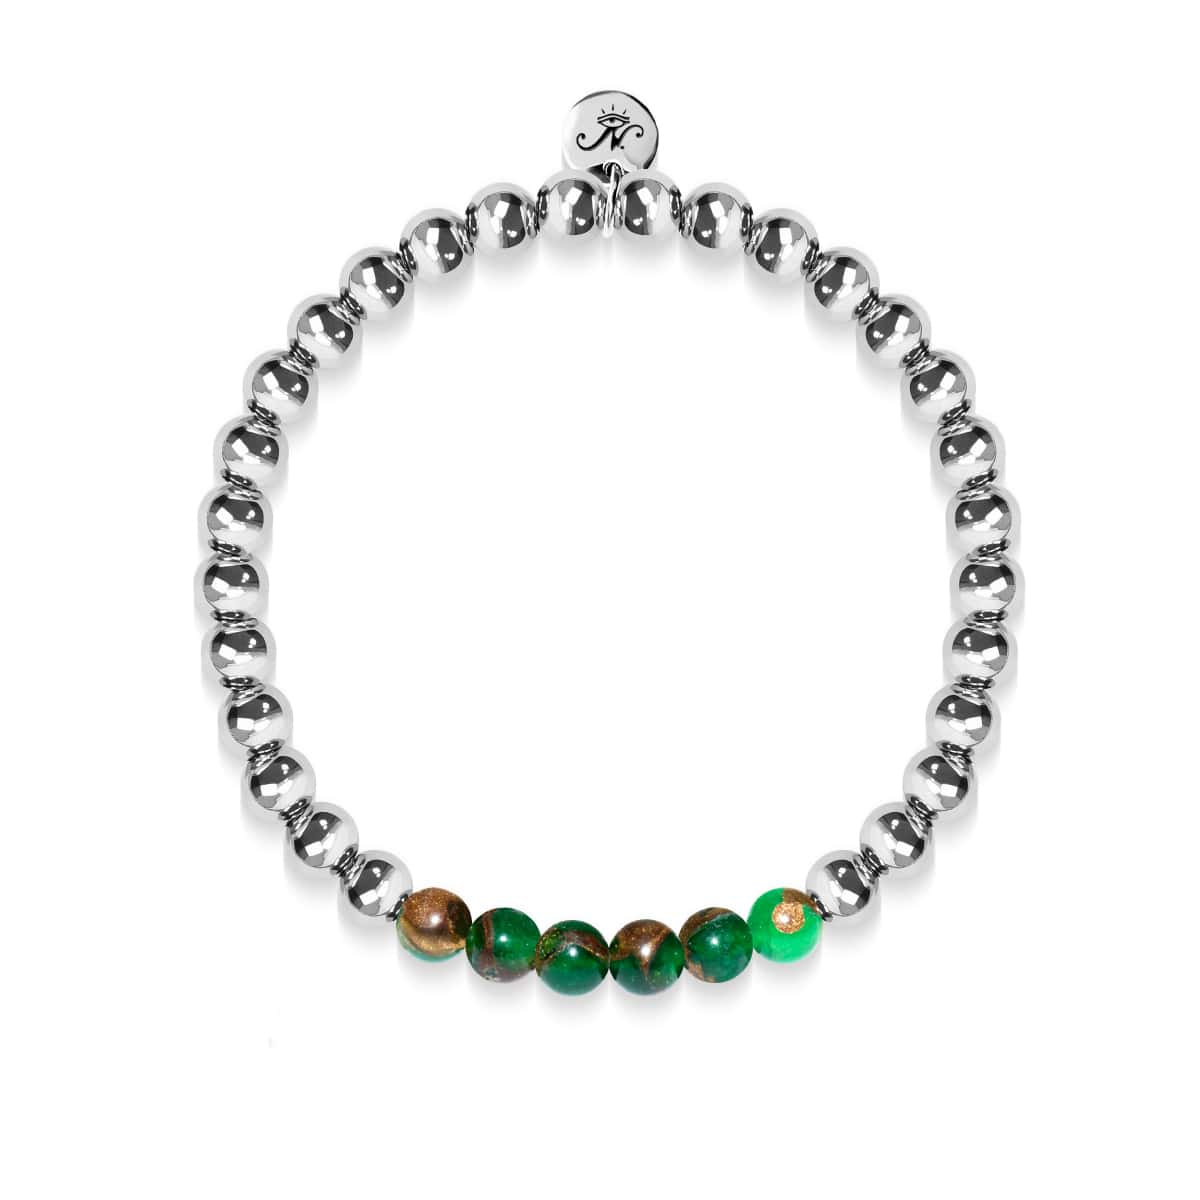 Dreamy | Silver | New Green Agate | Gemstone Expression Bracelet